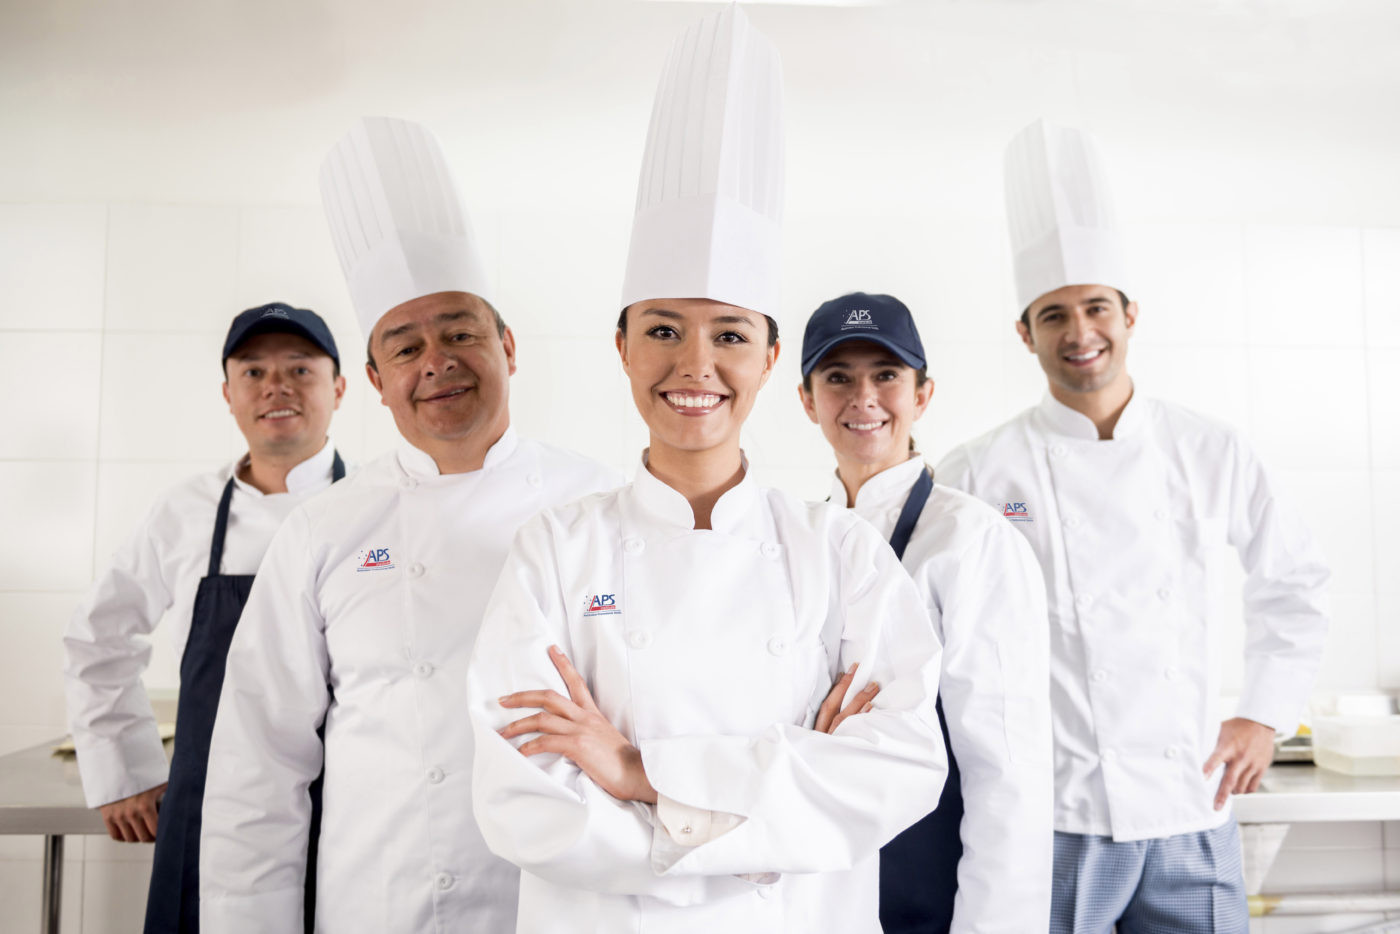 Cookery-Banner-photo-with-logo-e1493533996130